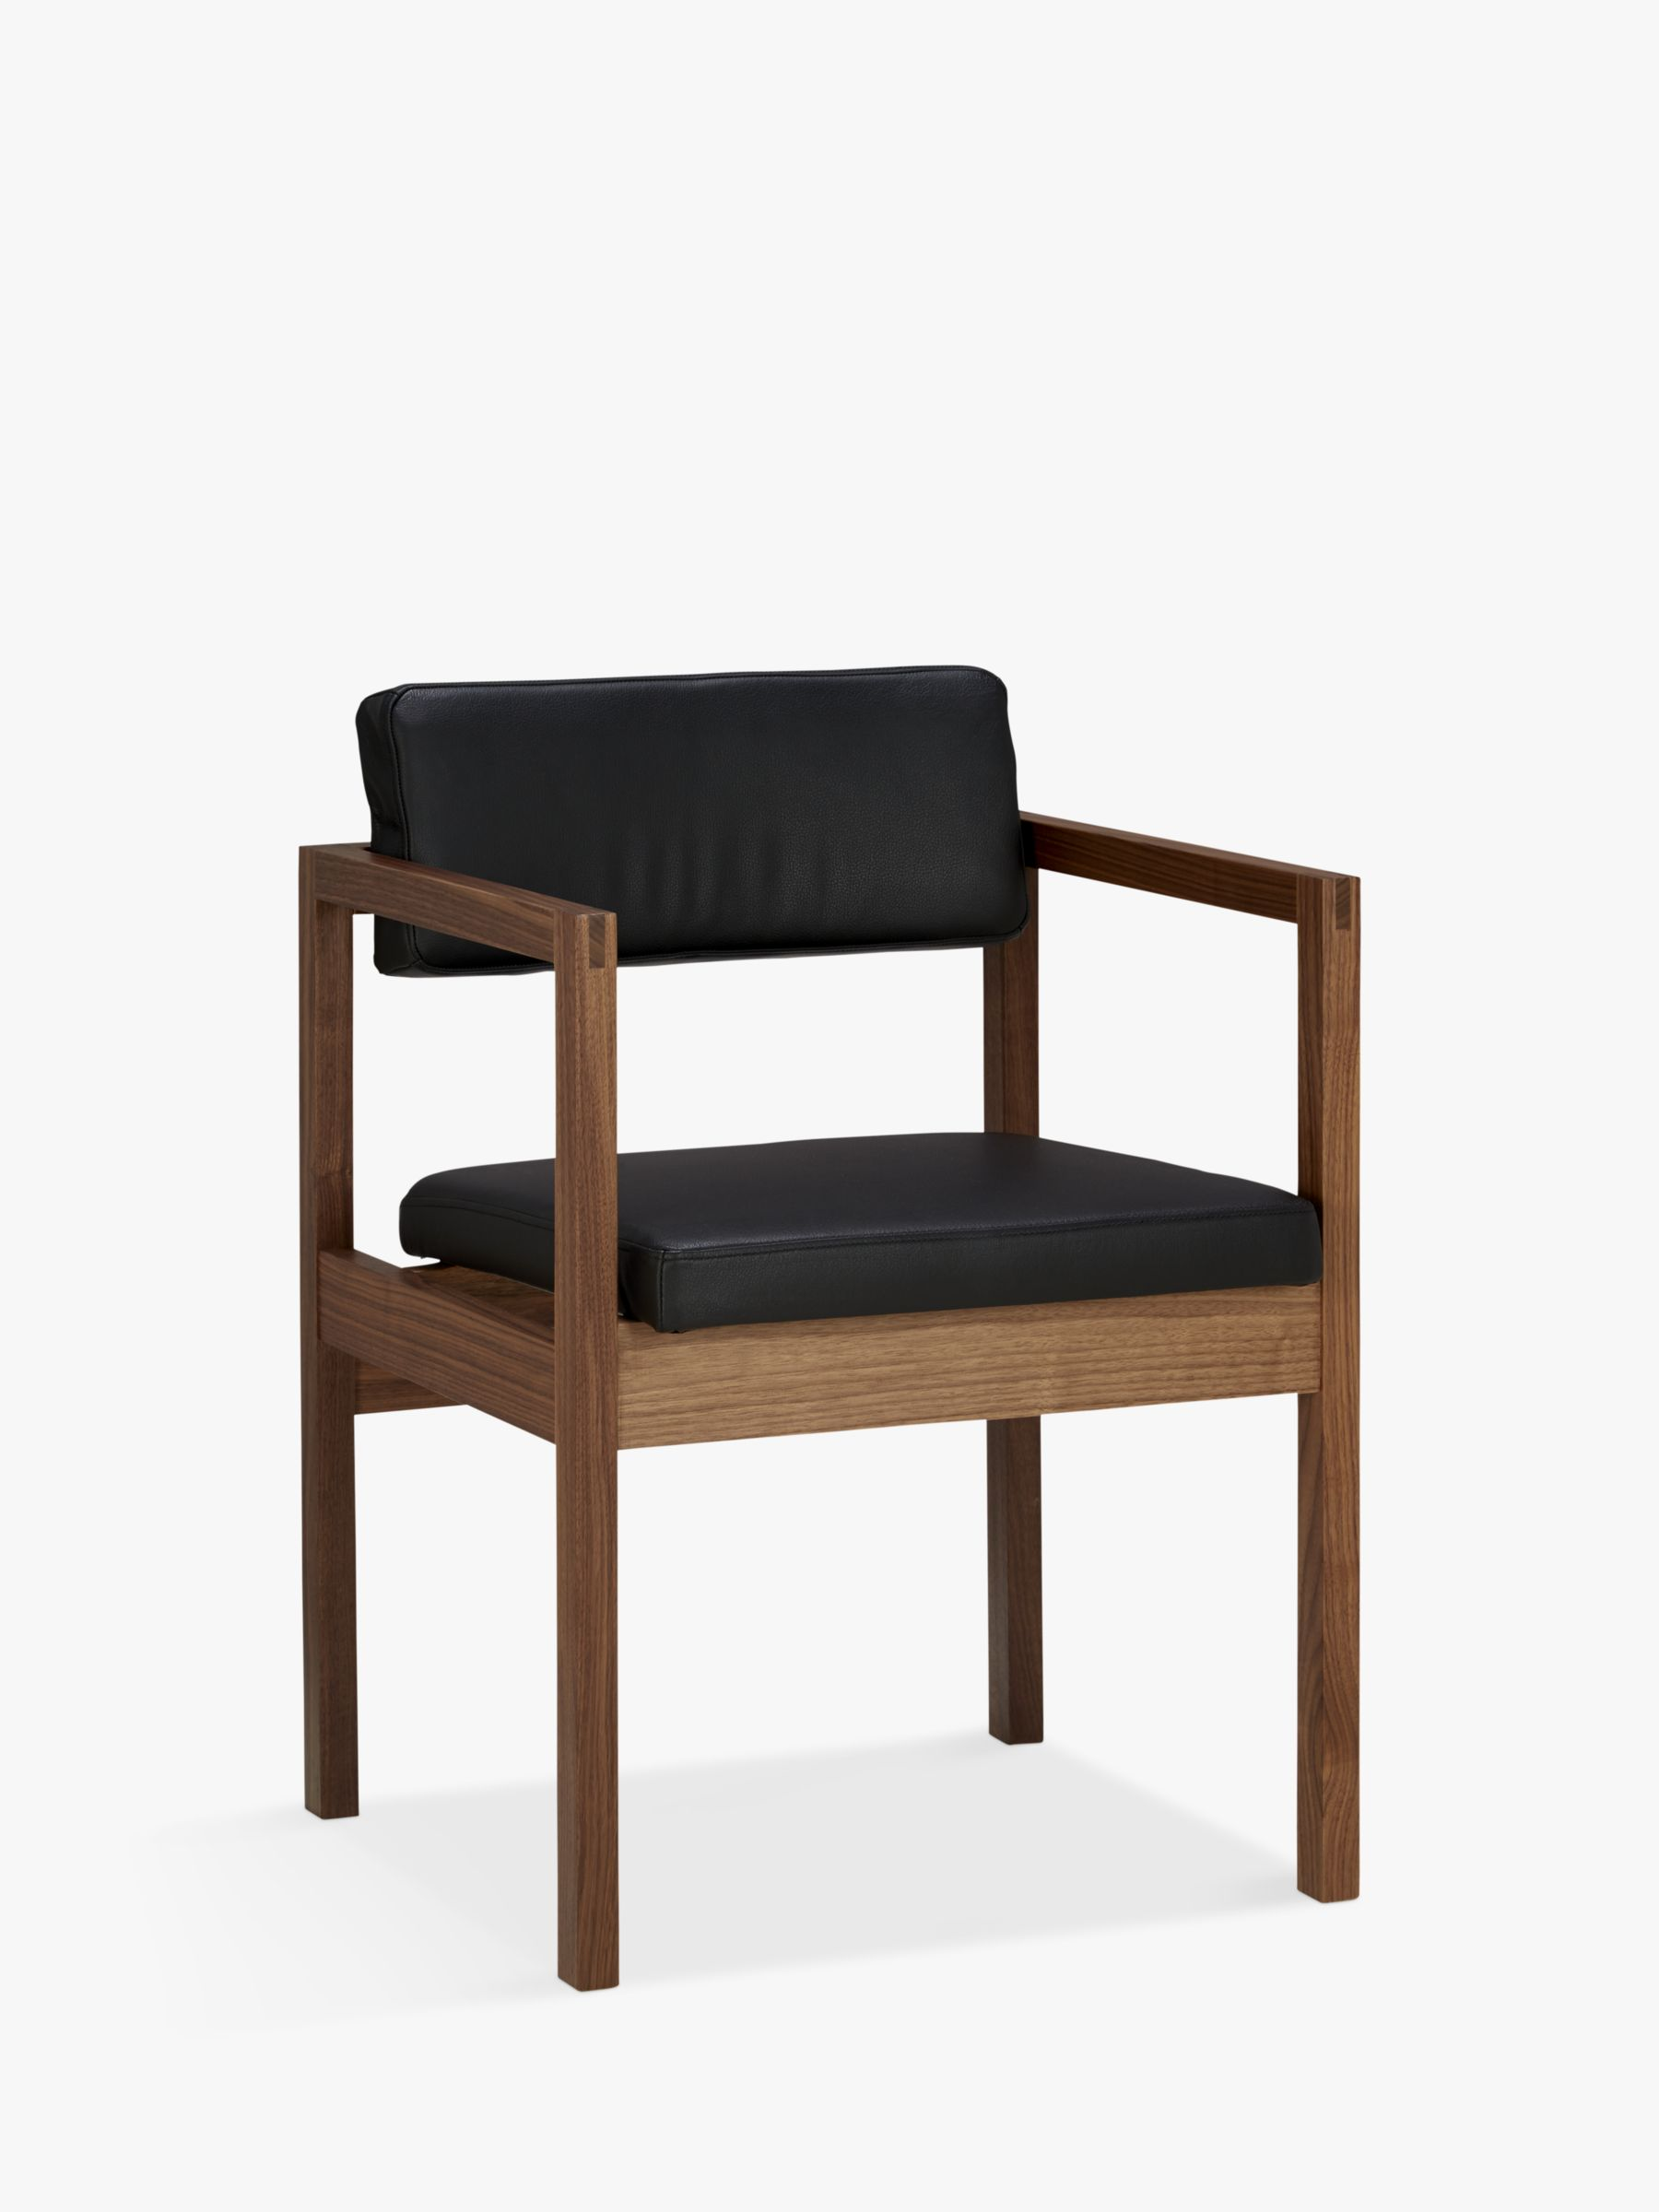 Case Robin Day for Case West Street Chair, Walnut